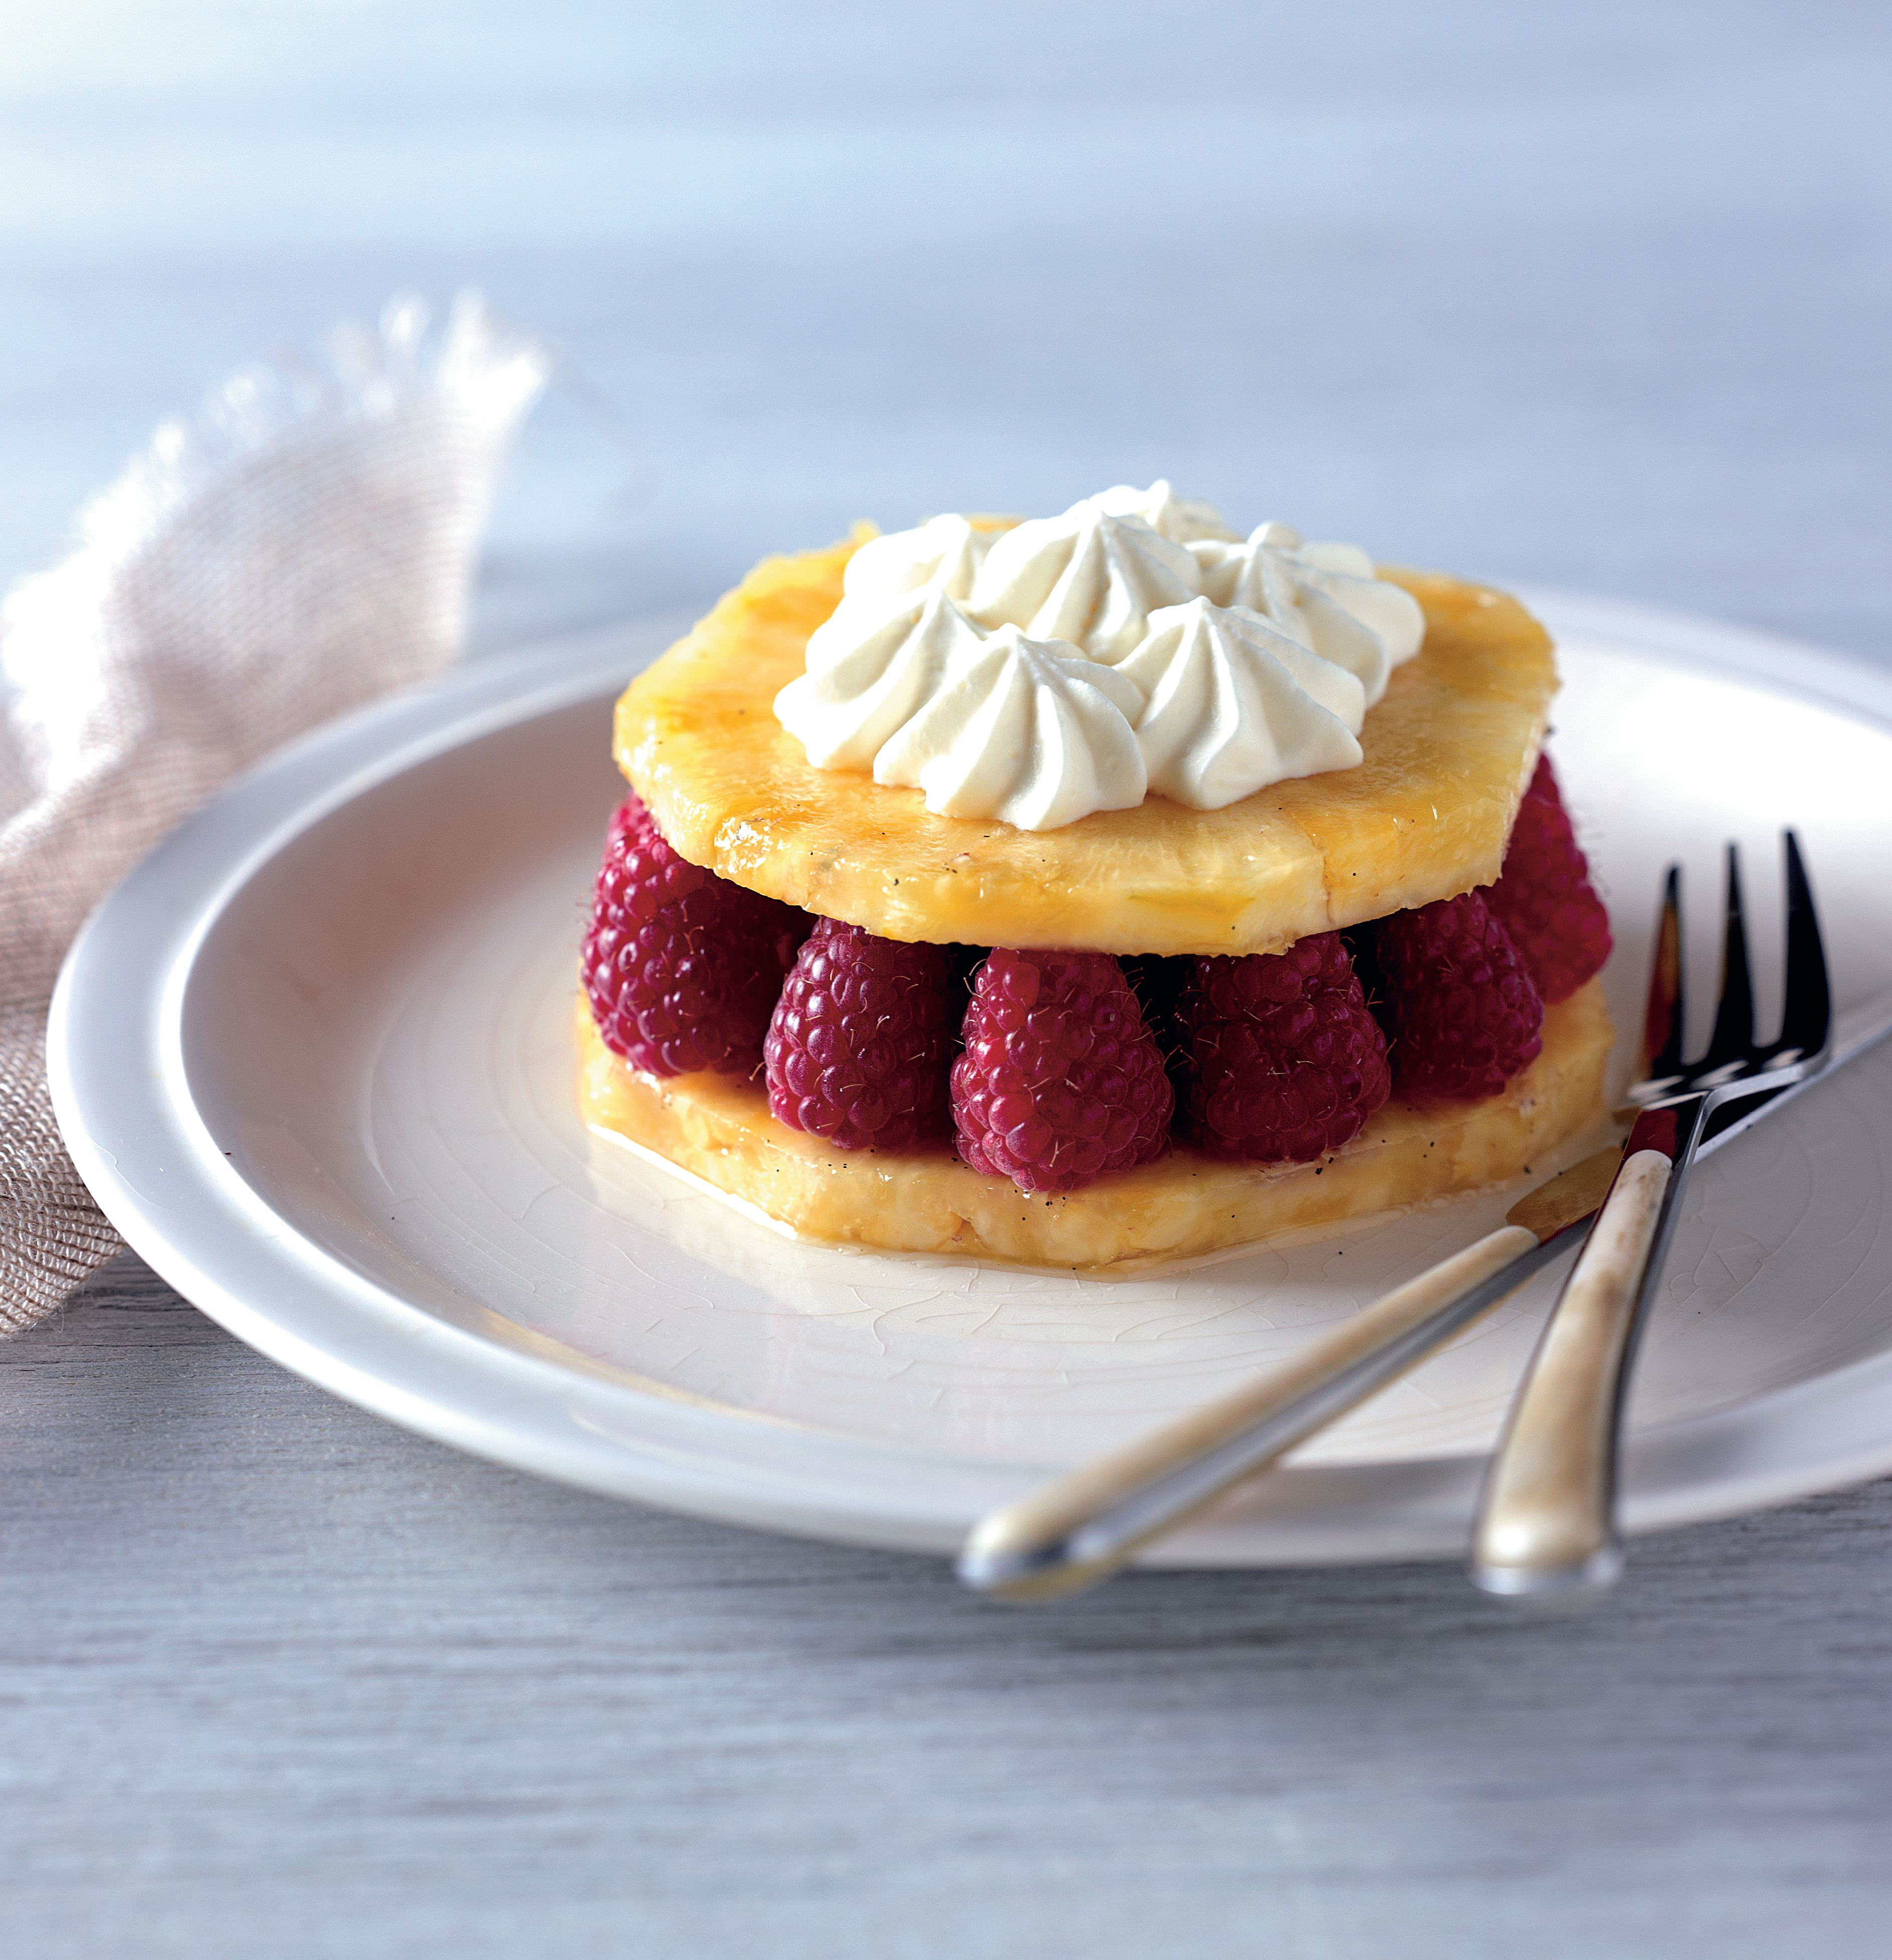 Pineapple and raspberries with crème fraîche chantilly